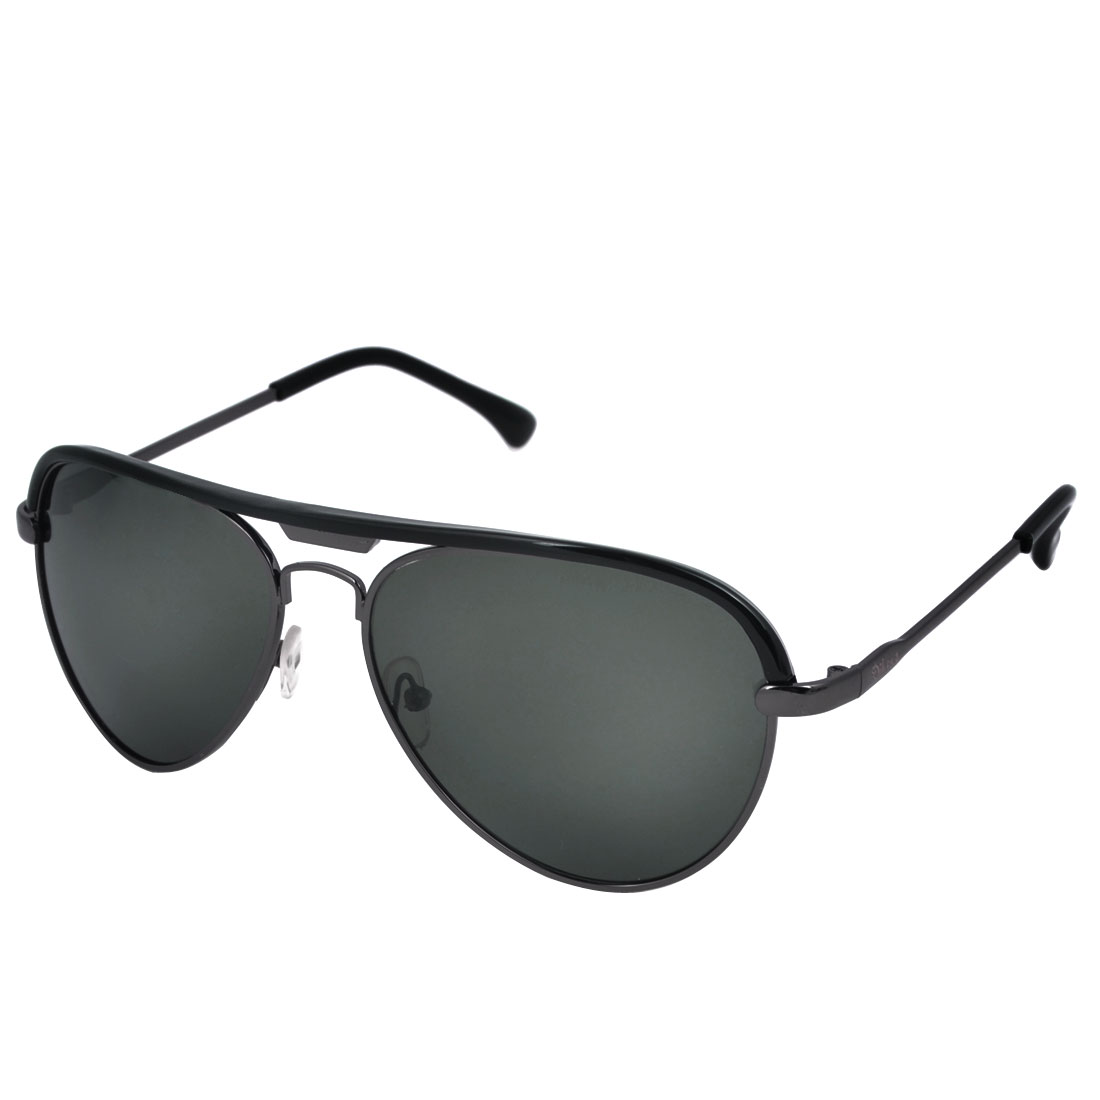 Black Full Rimmed Waterdrop Lens Leisure Polarized Sun Glasses for Man